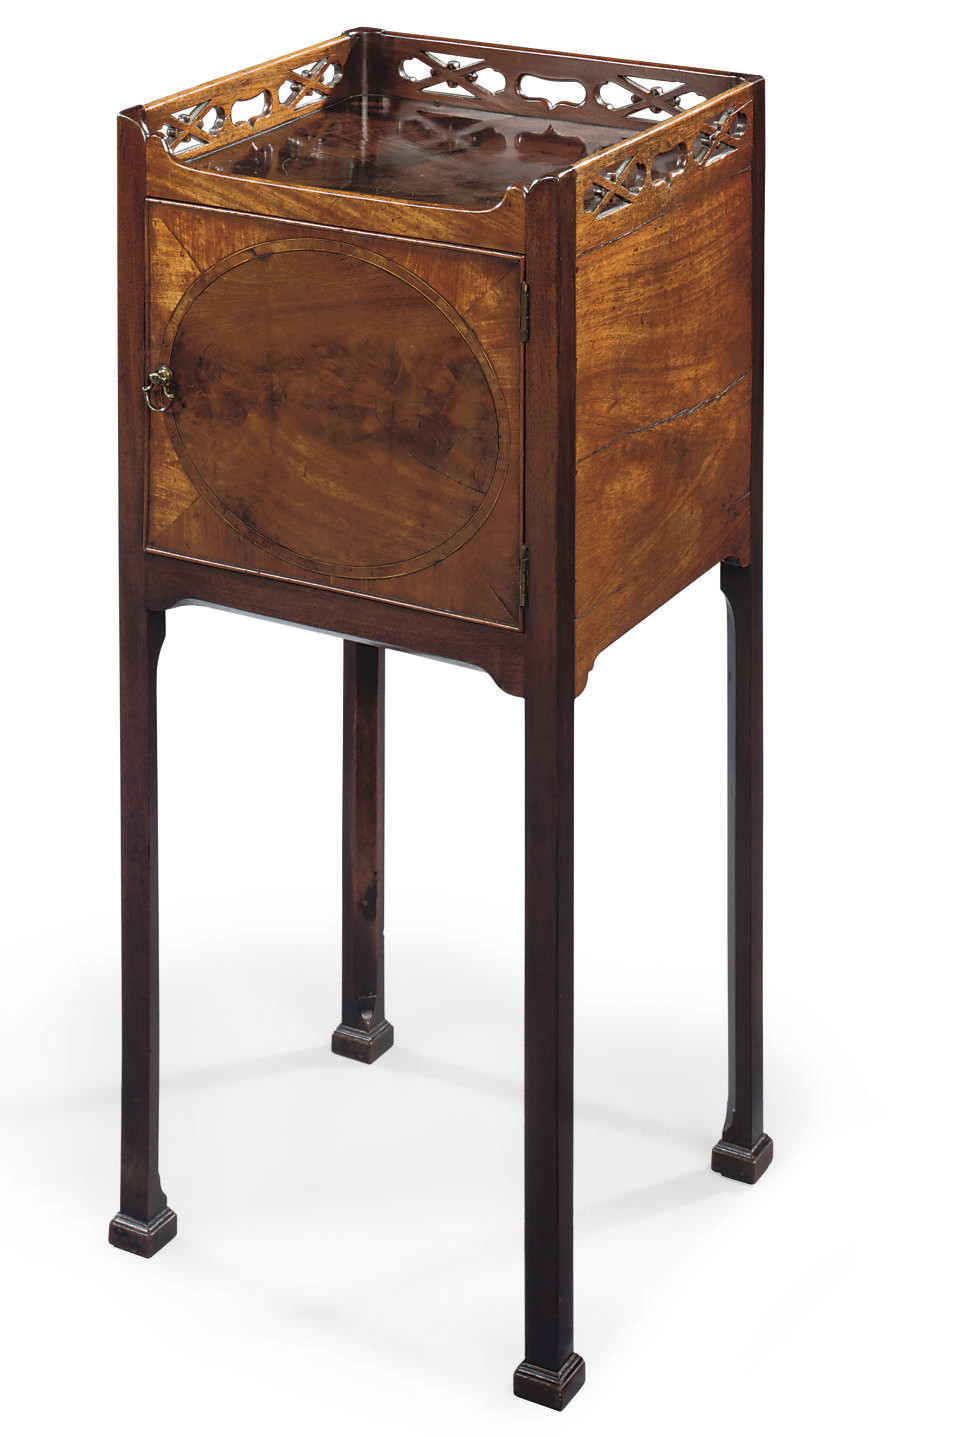 A GEORGE III MAHOGANY BEDSIDE TABLE